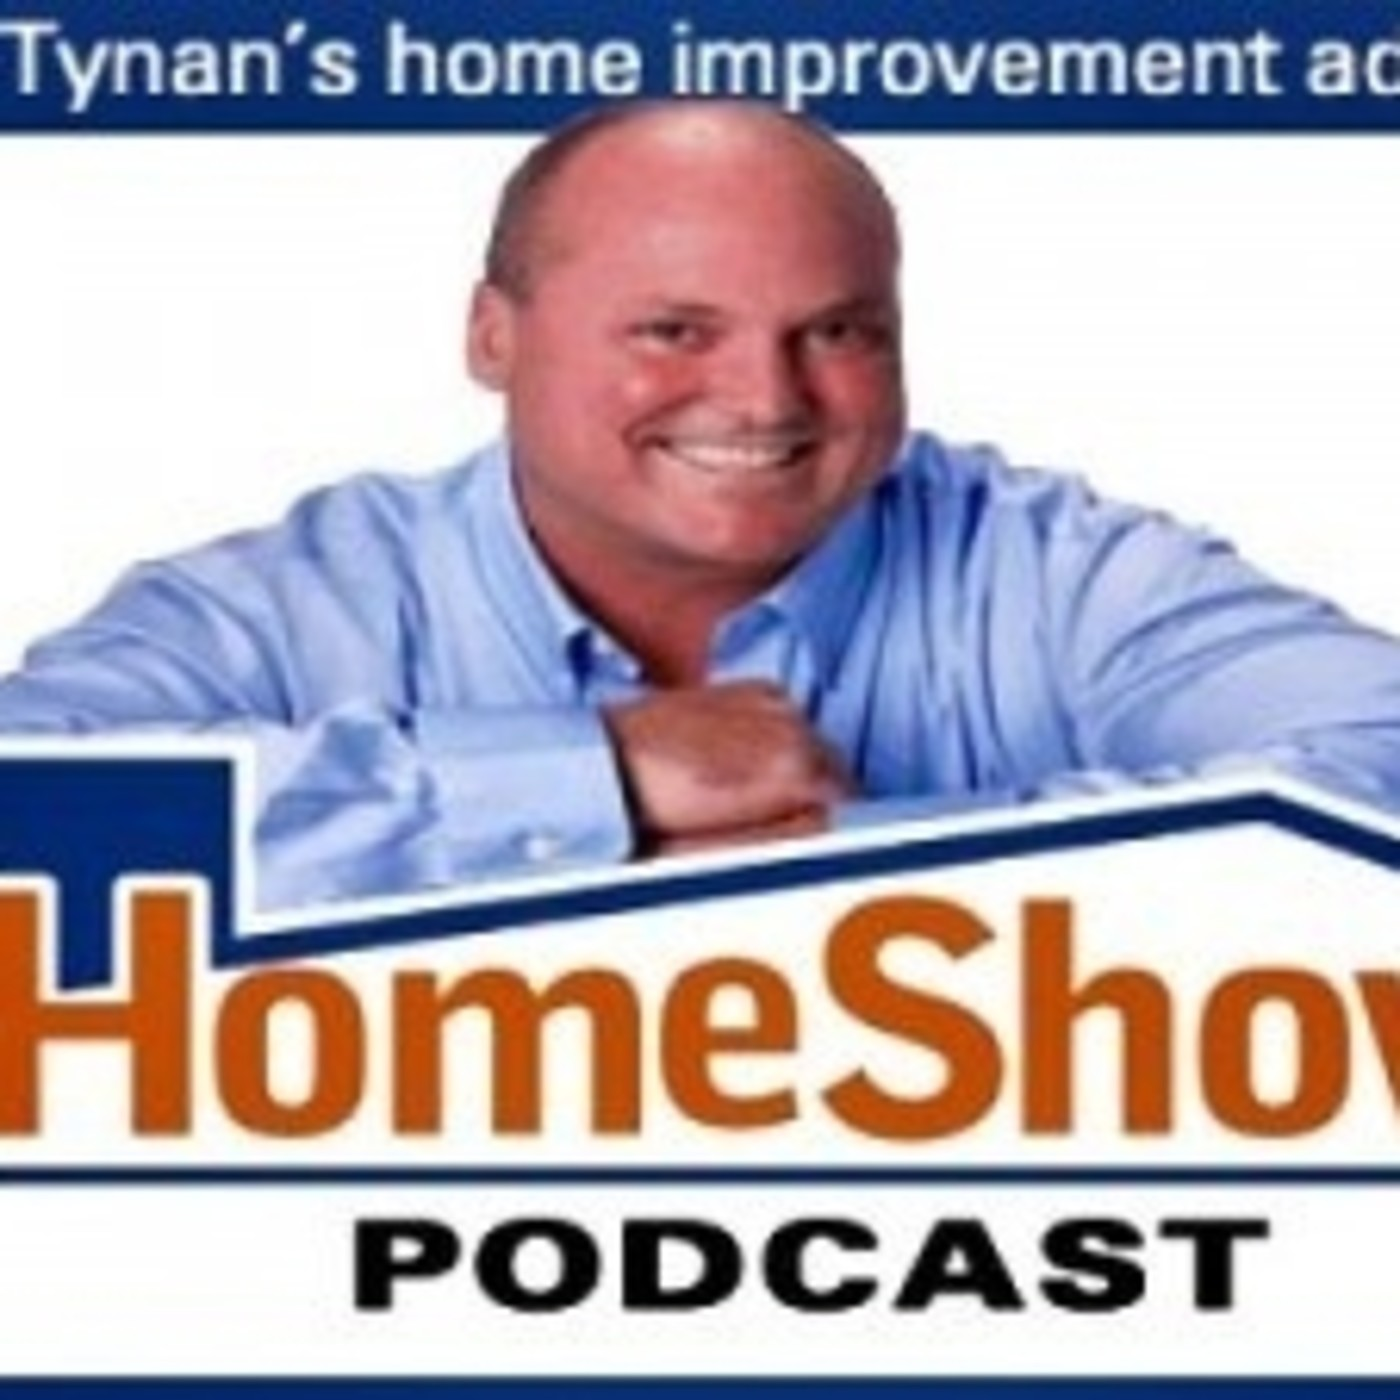 HomeShow Radio with Tom Tynan Podcast from 10/17/20 Hour 1